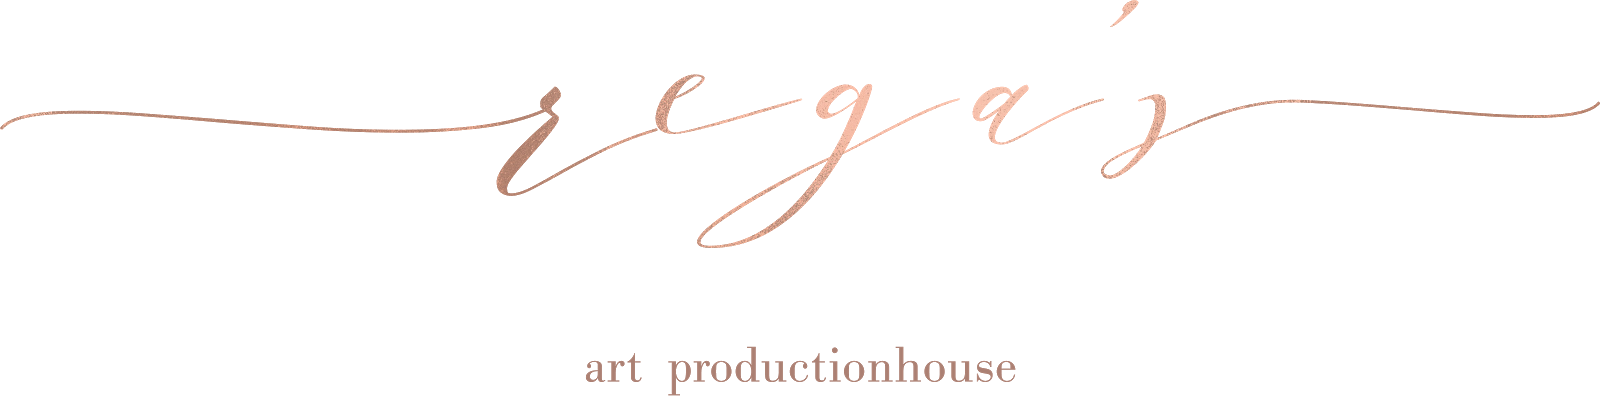 art productionhouse